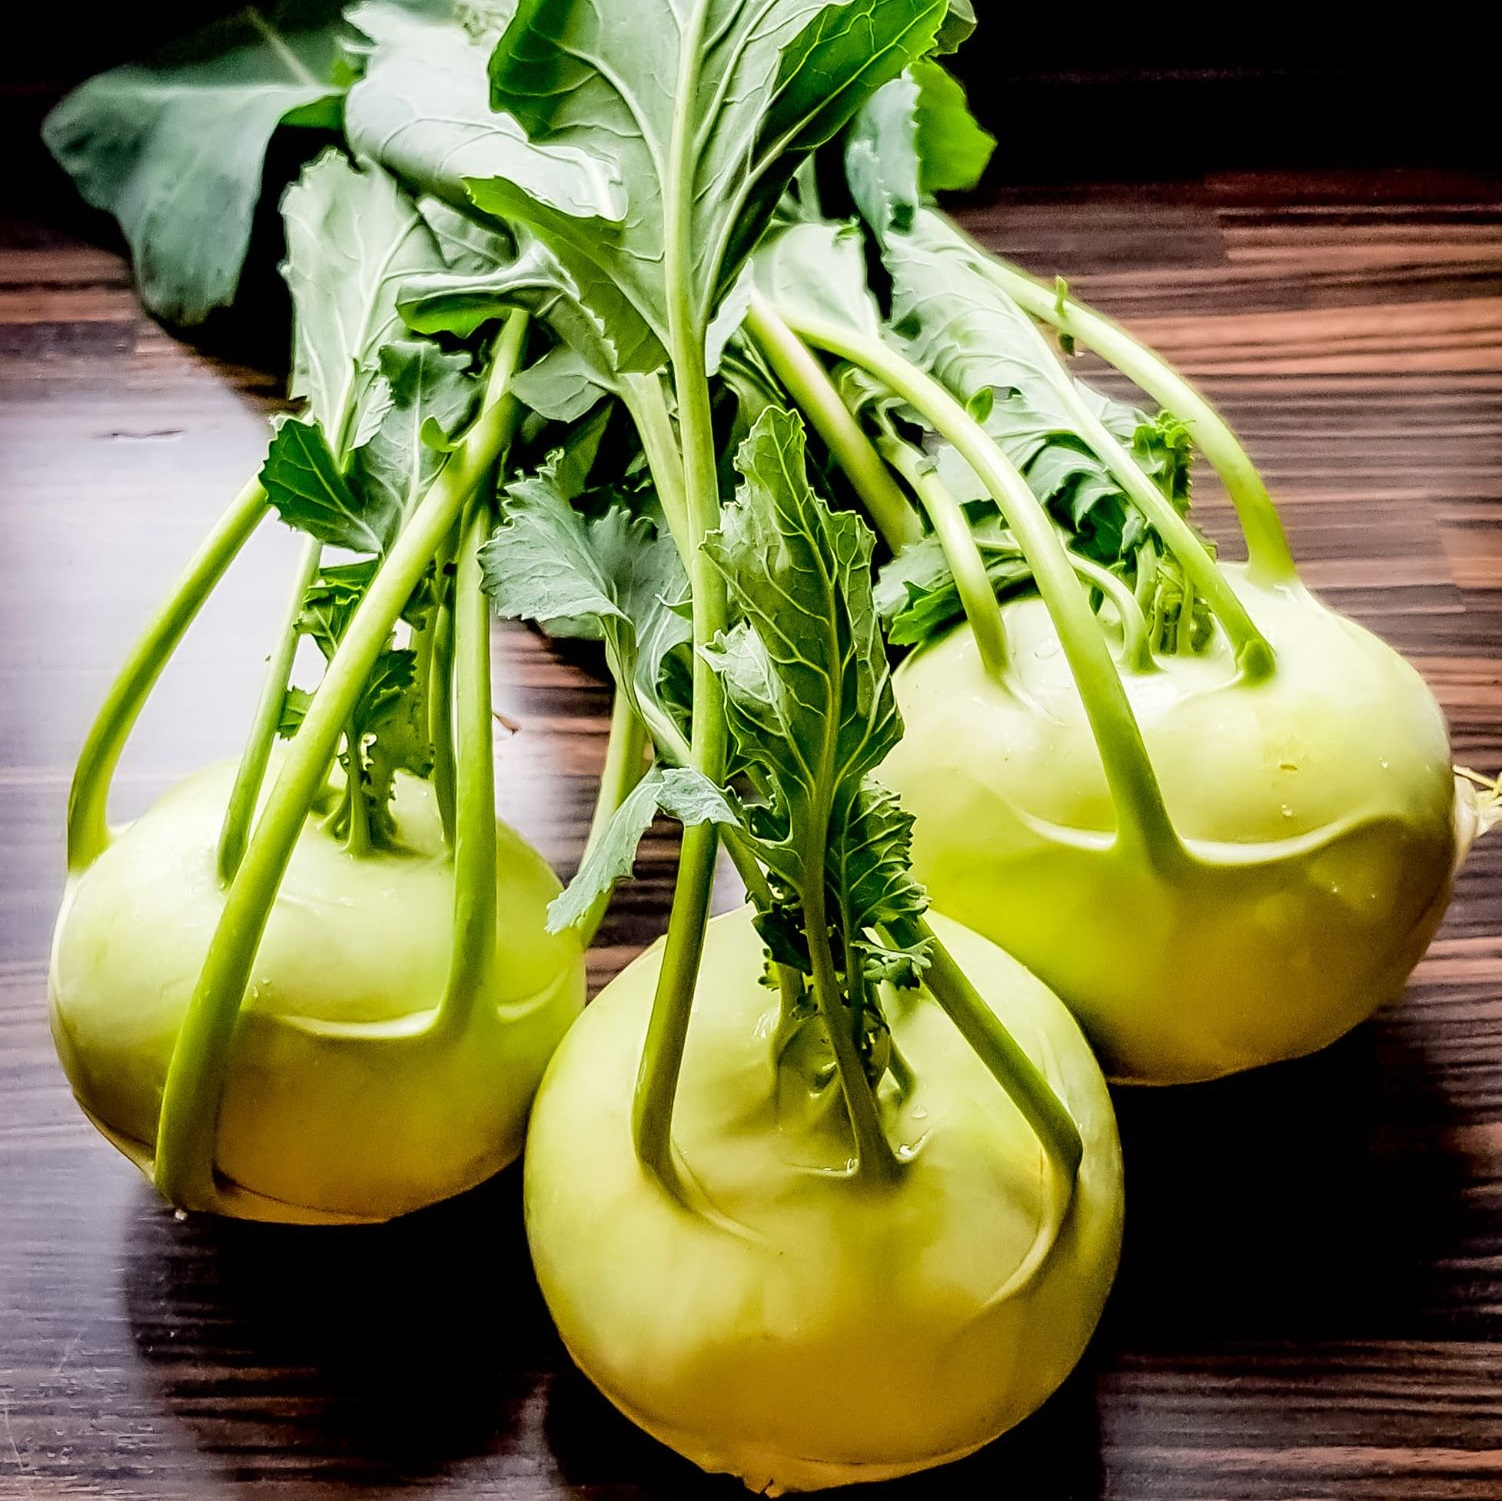 Buy Kohlrabi Farm Next Door